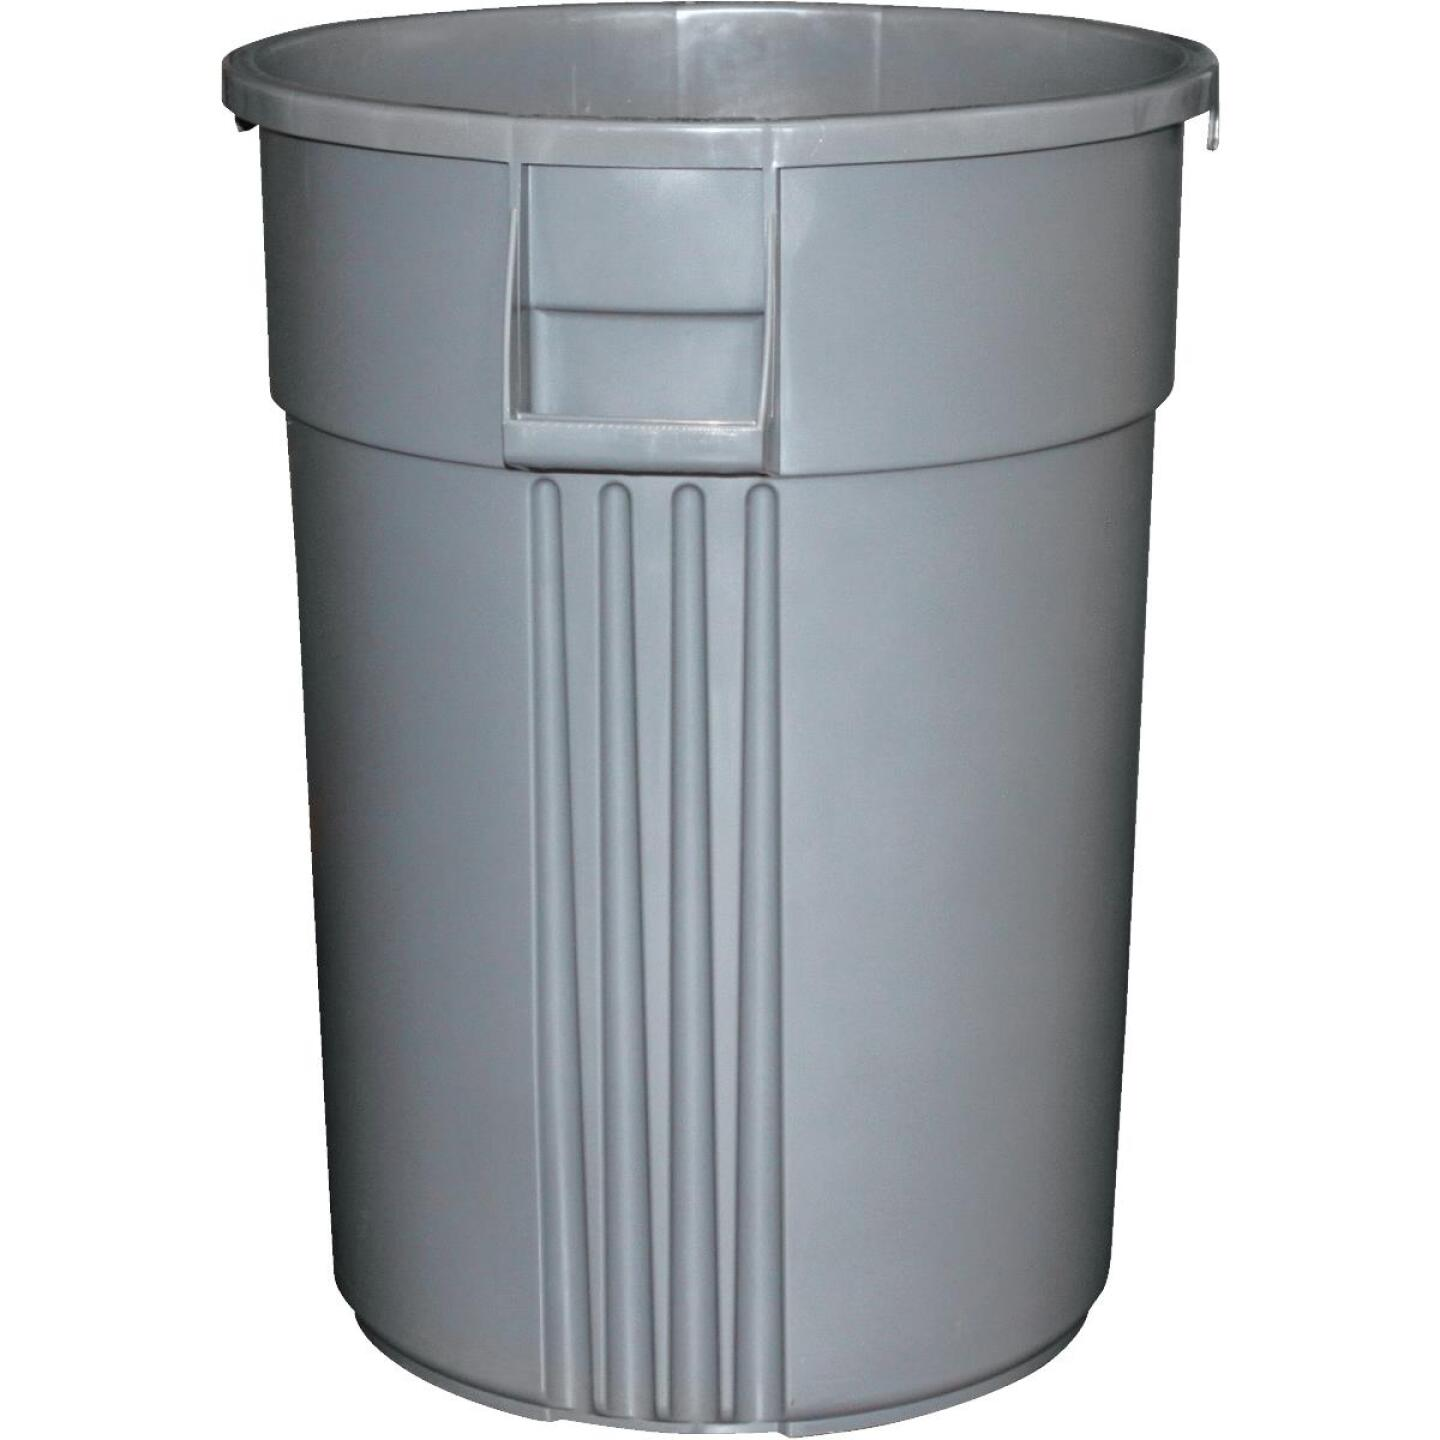 Impact Gator 44 Gal. Commercial Trash Can Image 1